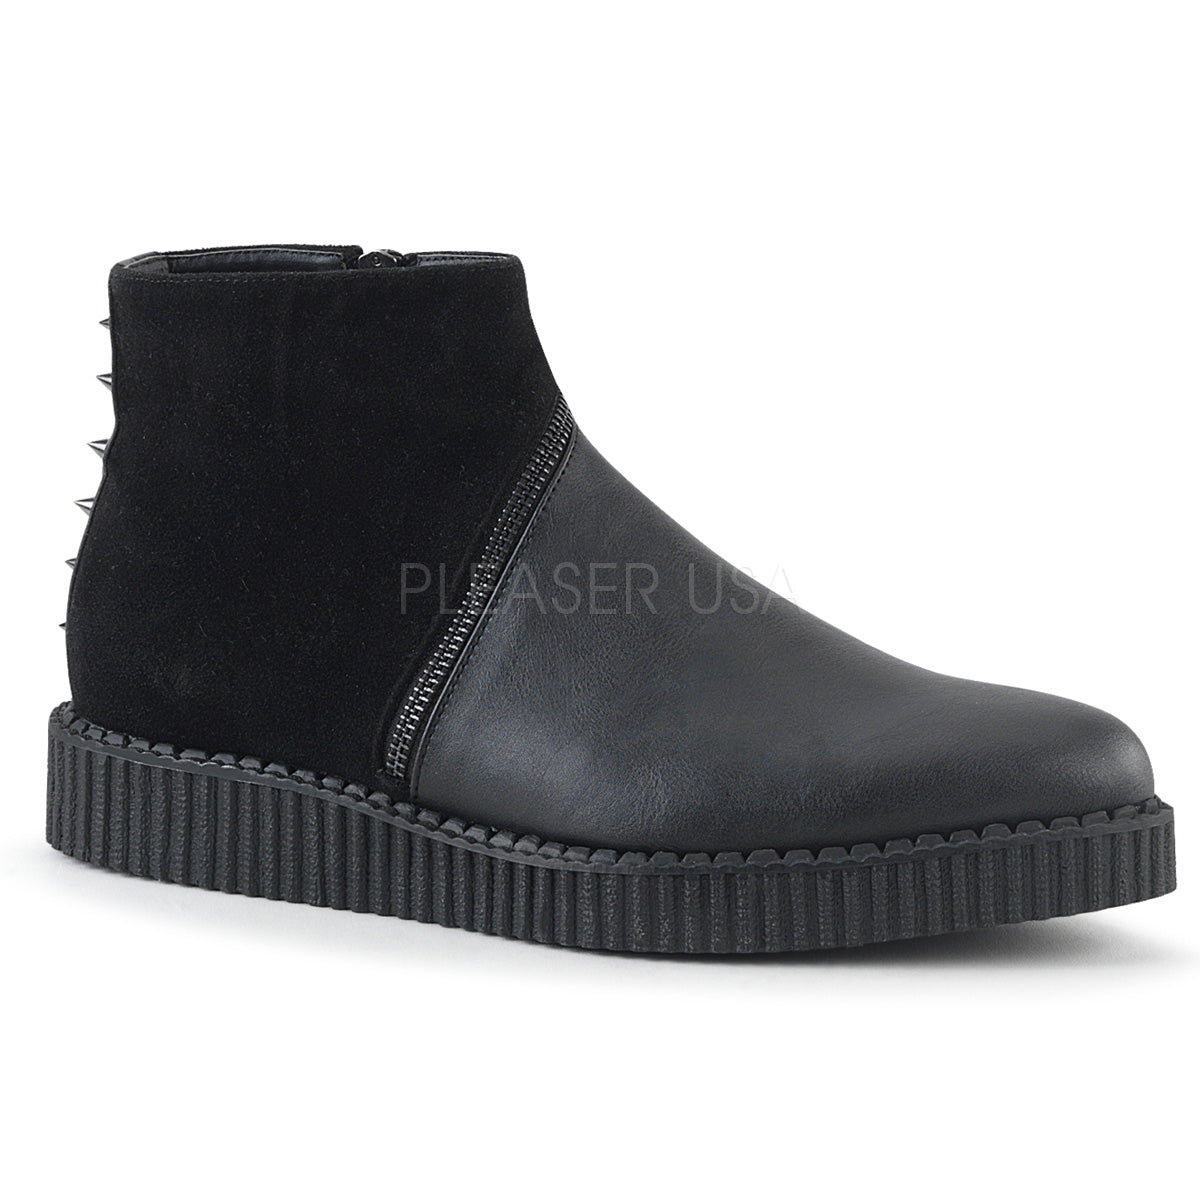 "Demonia V-CREEPER-750 Black 1 1/4"" Platform Pointed Toe Ankle Boot Creeper With Asymmetrical Zipper Across the Vamp and Cone Studs Up the Back, Metal Inside Zip Closure"